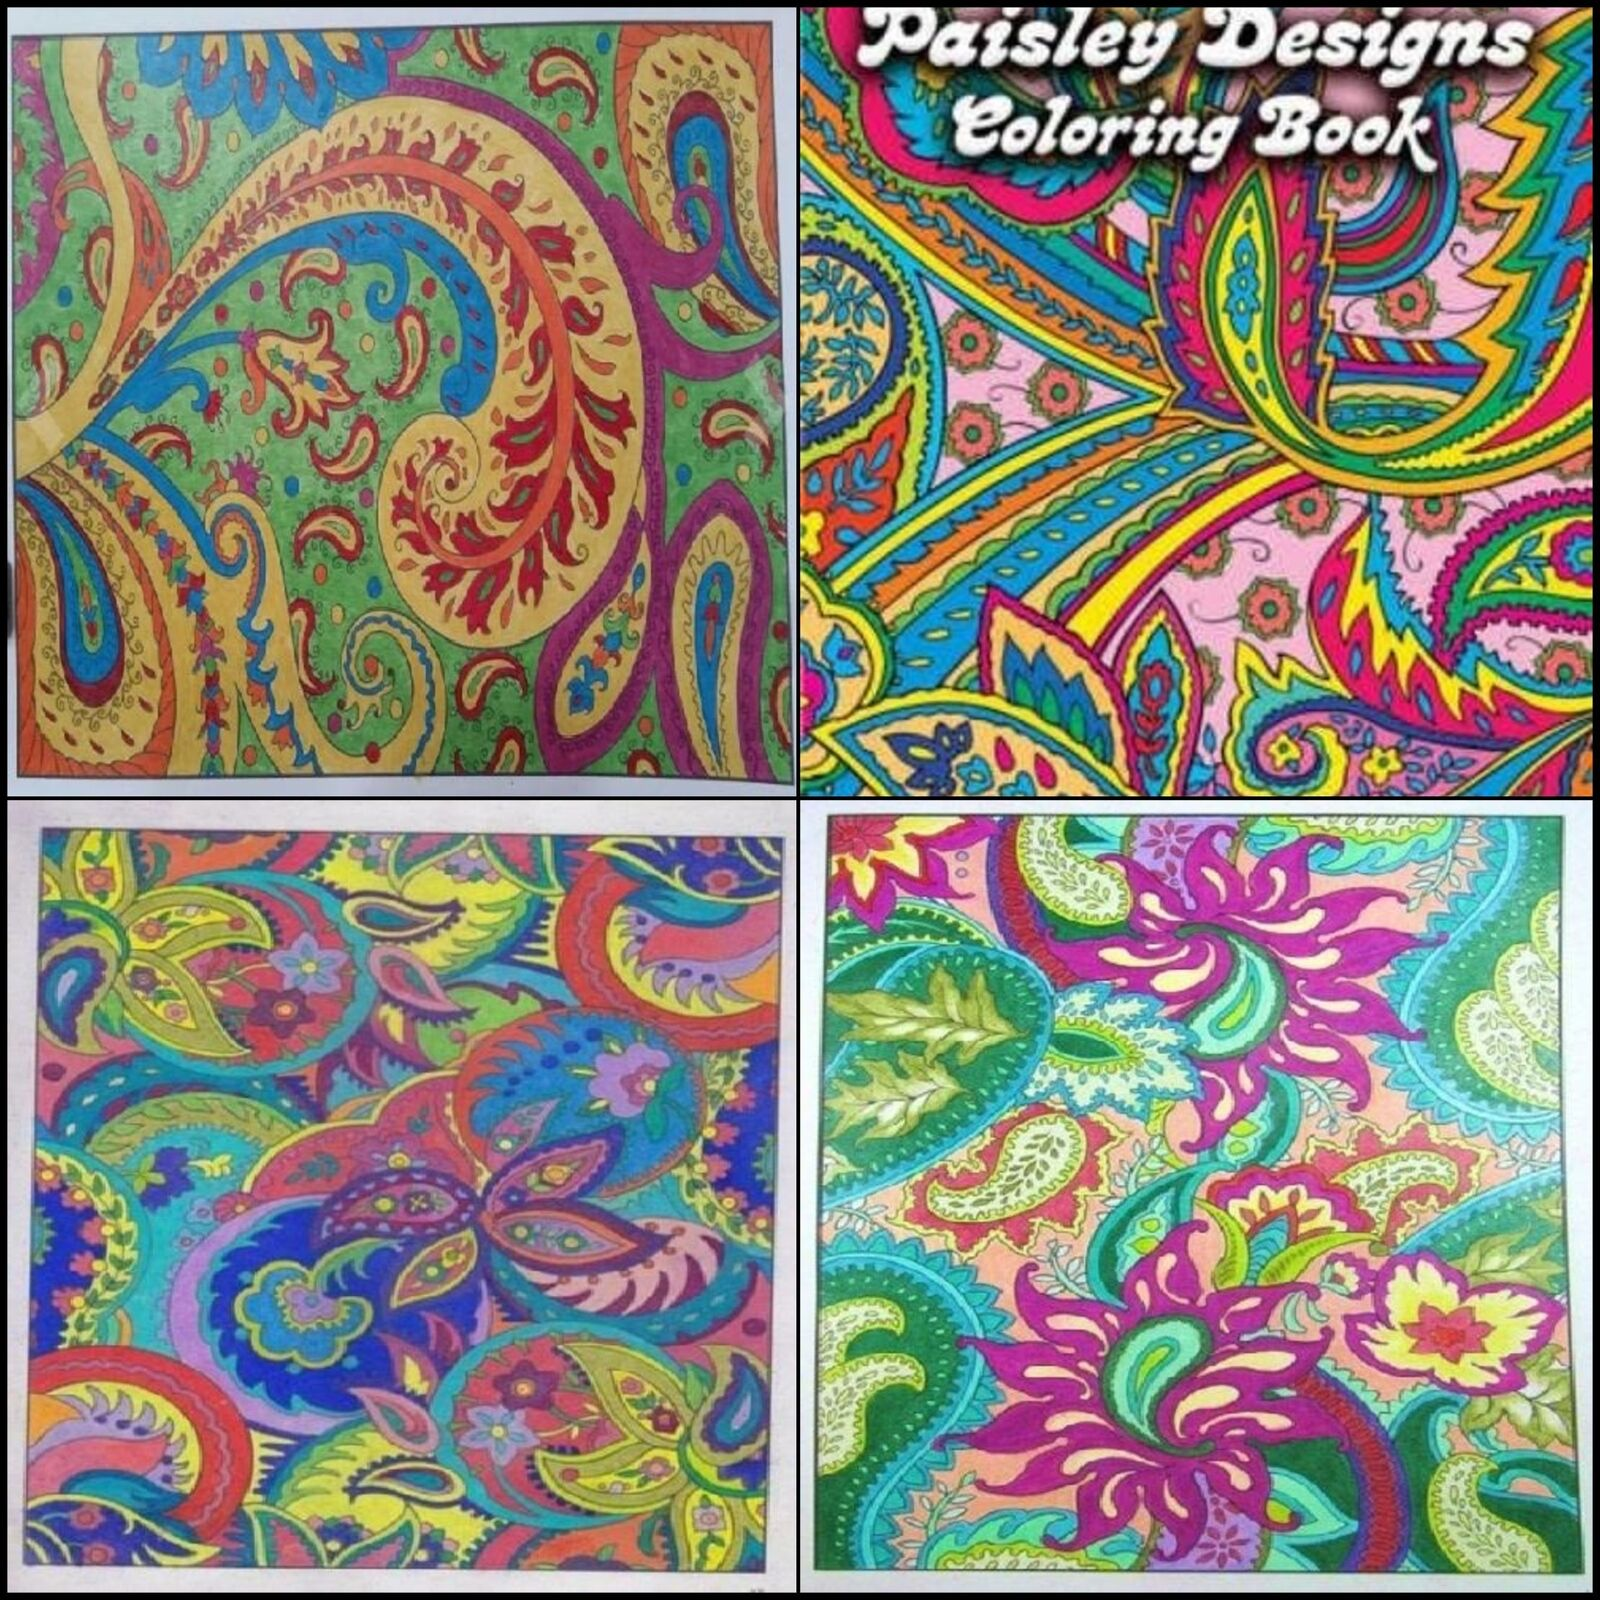 Paisley Designs Coloring Book Art Relaxation Adult Stress Relieving Patterns NEW 1 Of 8FREE Shipping